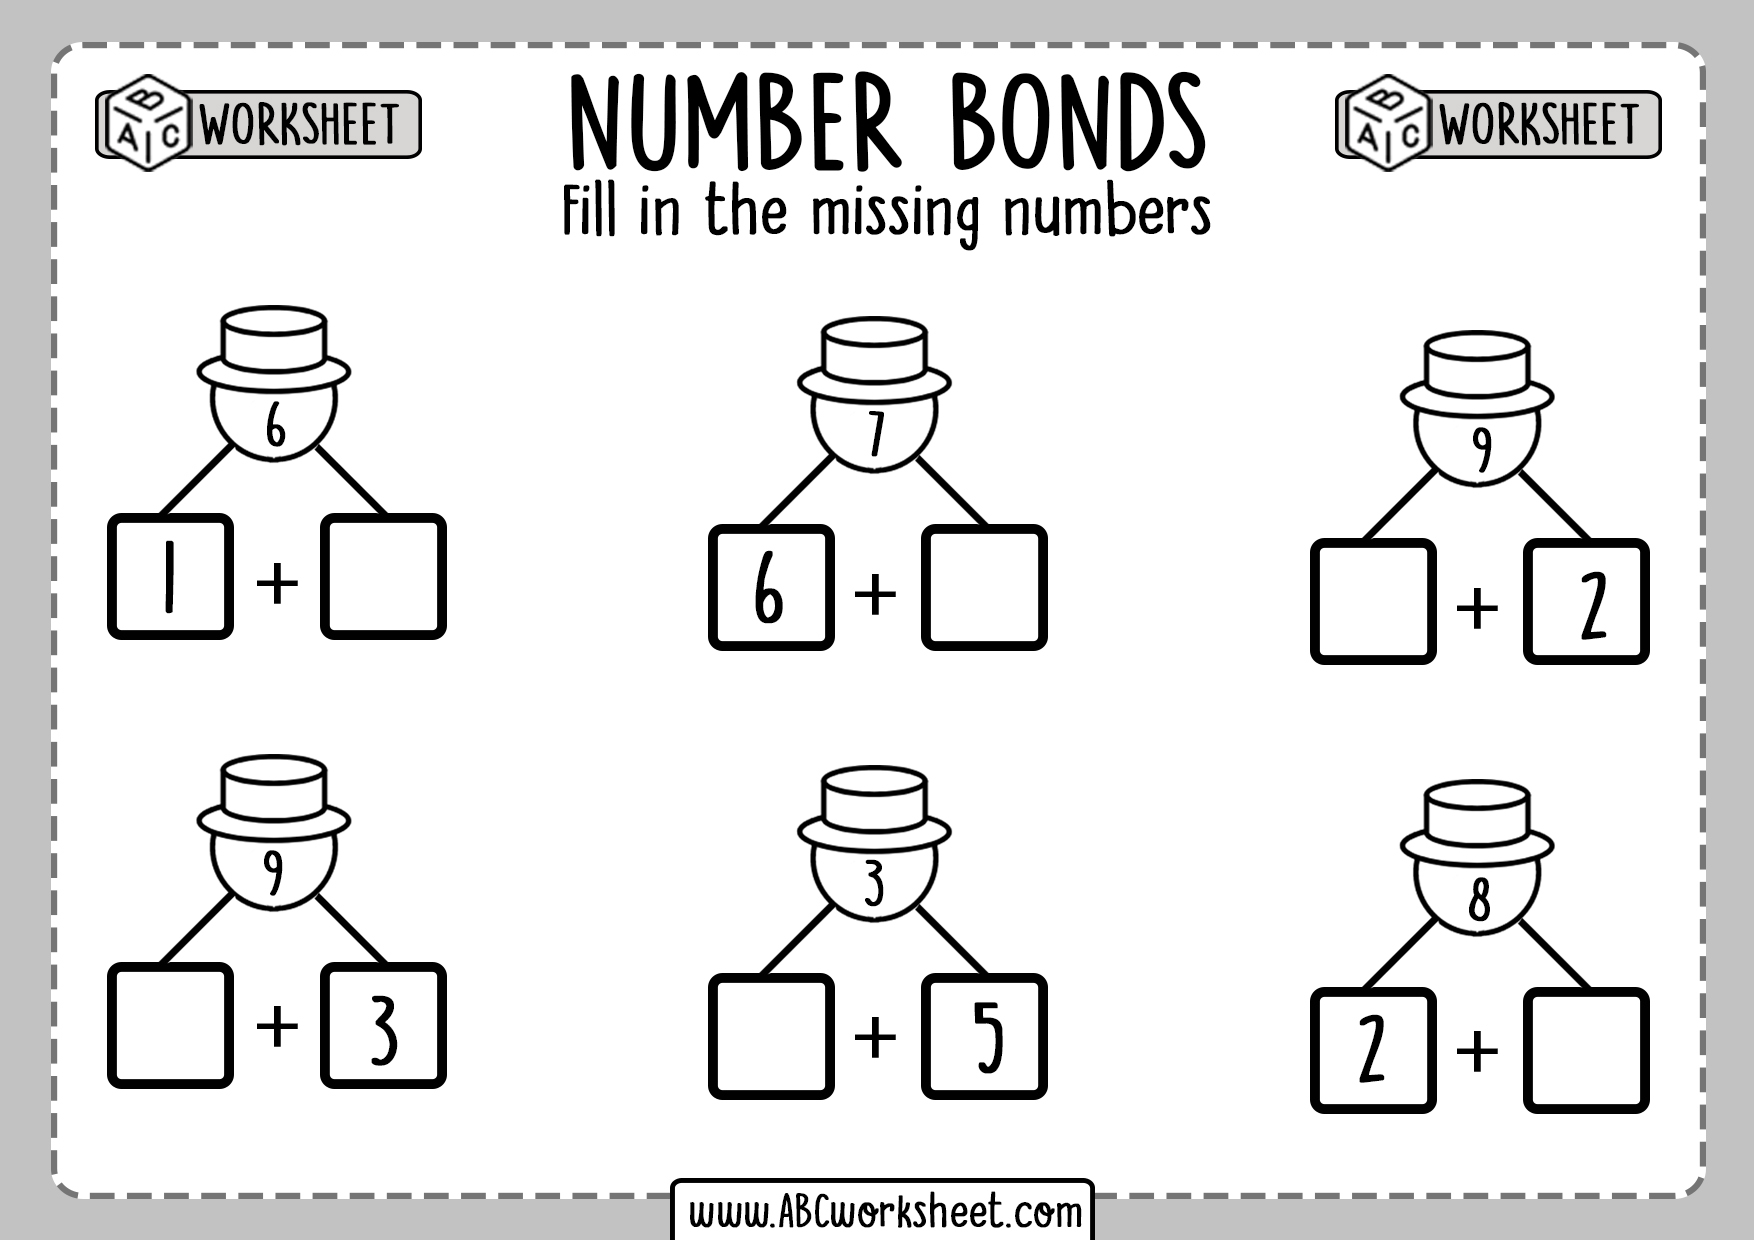 Number Bonds Exercises